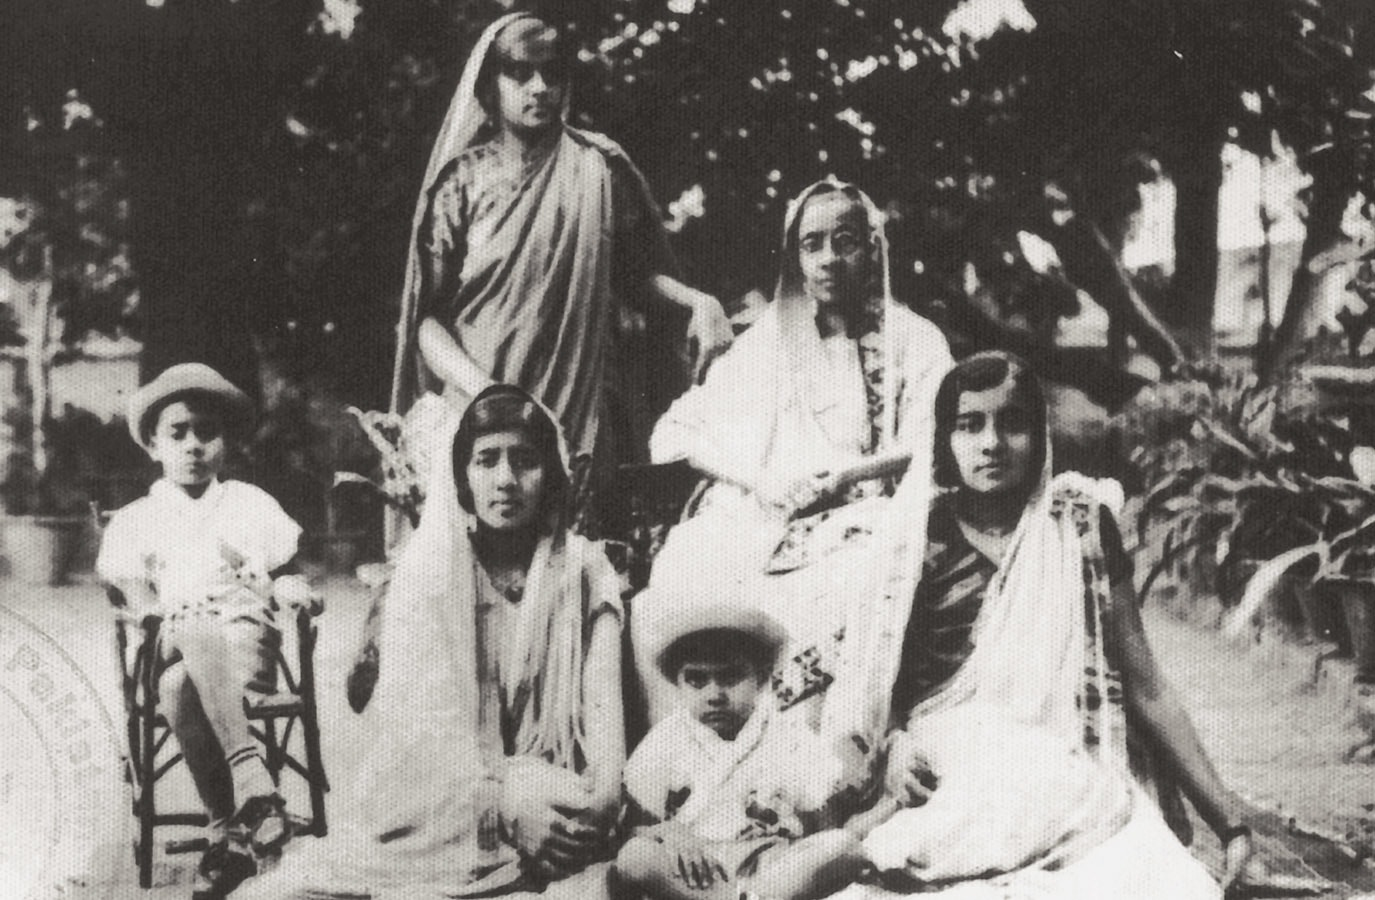 A group photograph of Quaid-i-Azam Mohammad Ali Jinnah's siblings. Front row, from left to right: Fatima Jinnah, Bunde Ali Jinnah and Shirin Jinnah; back row, from left to right: Ahmed Ali Jinnah, Maryam Jinnah and Rehmat Jinnah. | Photo: *Pioneers of Pakistan: Jinnah & Iqbal* published by the ISPR